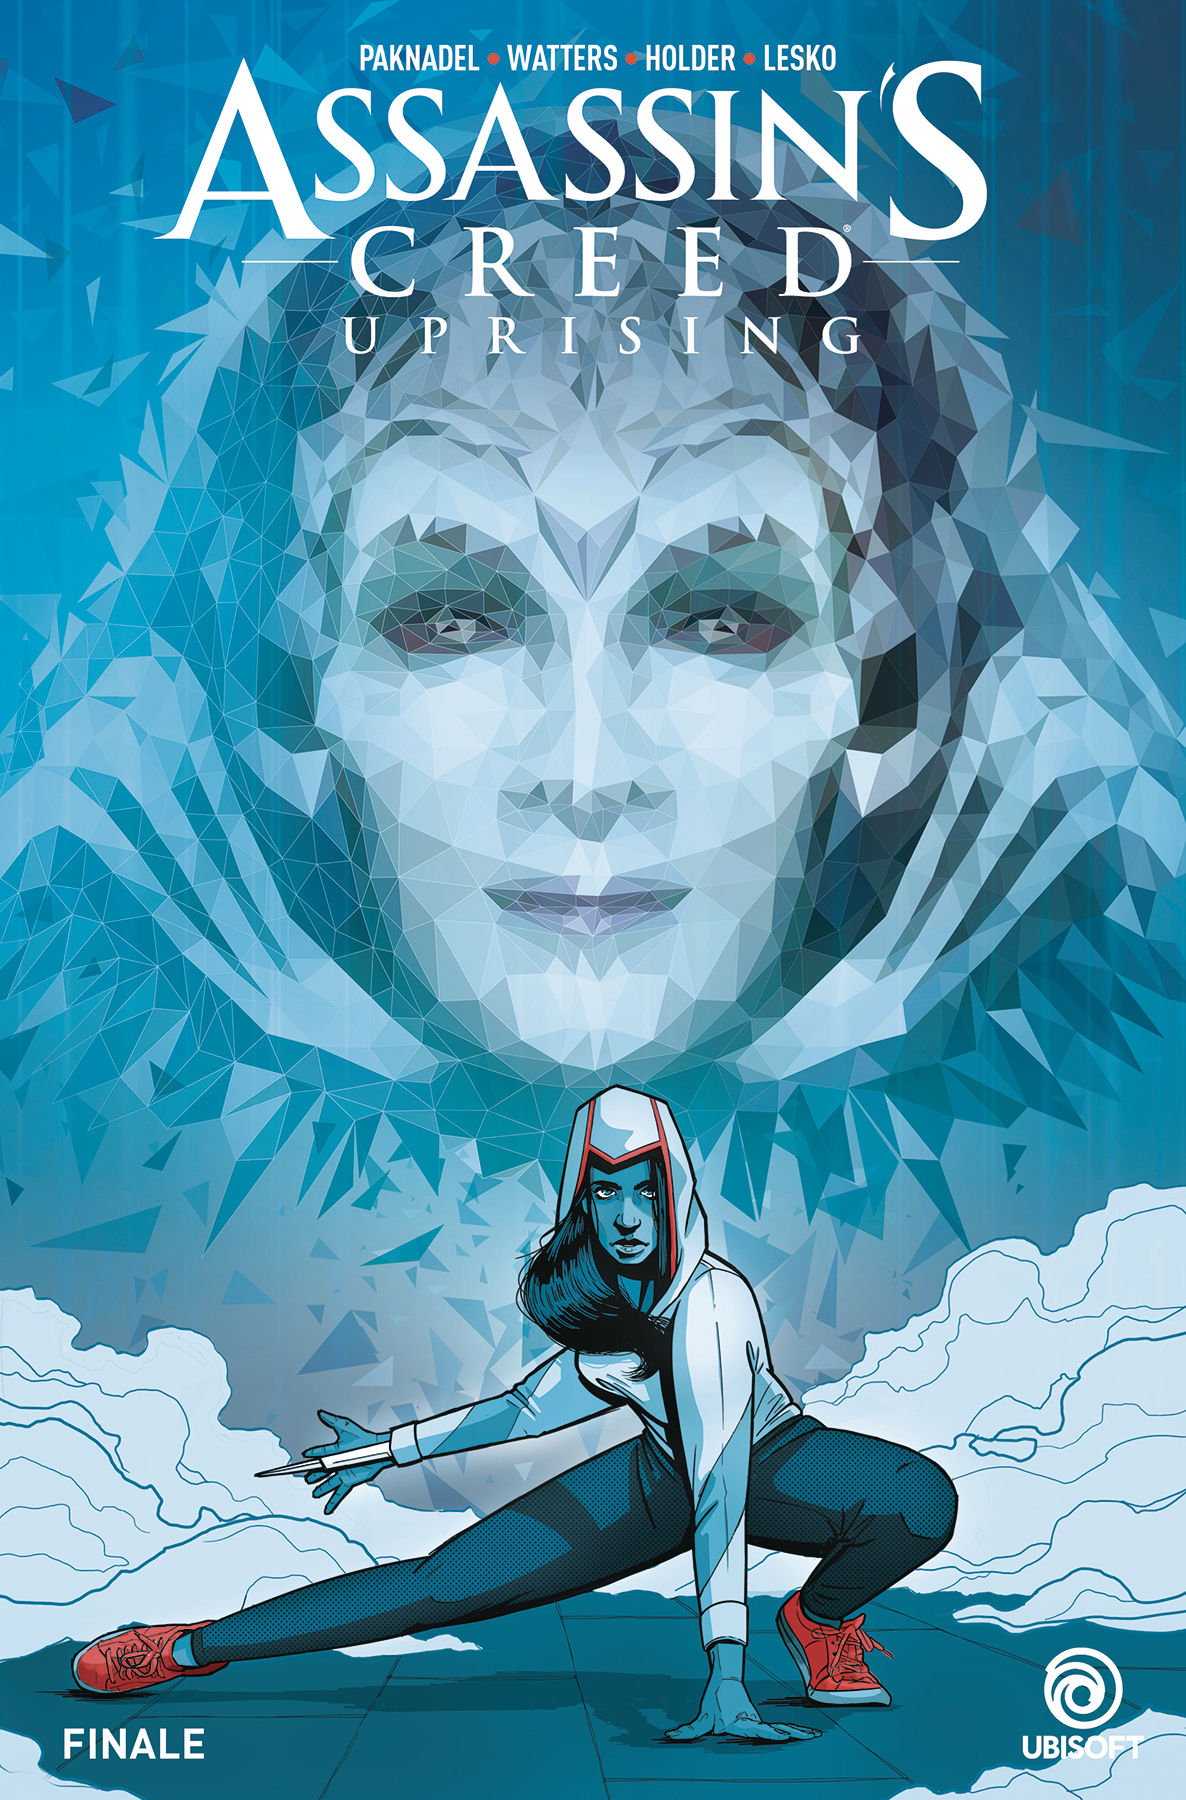 Apr181805 Assassins Creed Uprising Tp Vol 03 Finale Previews World